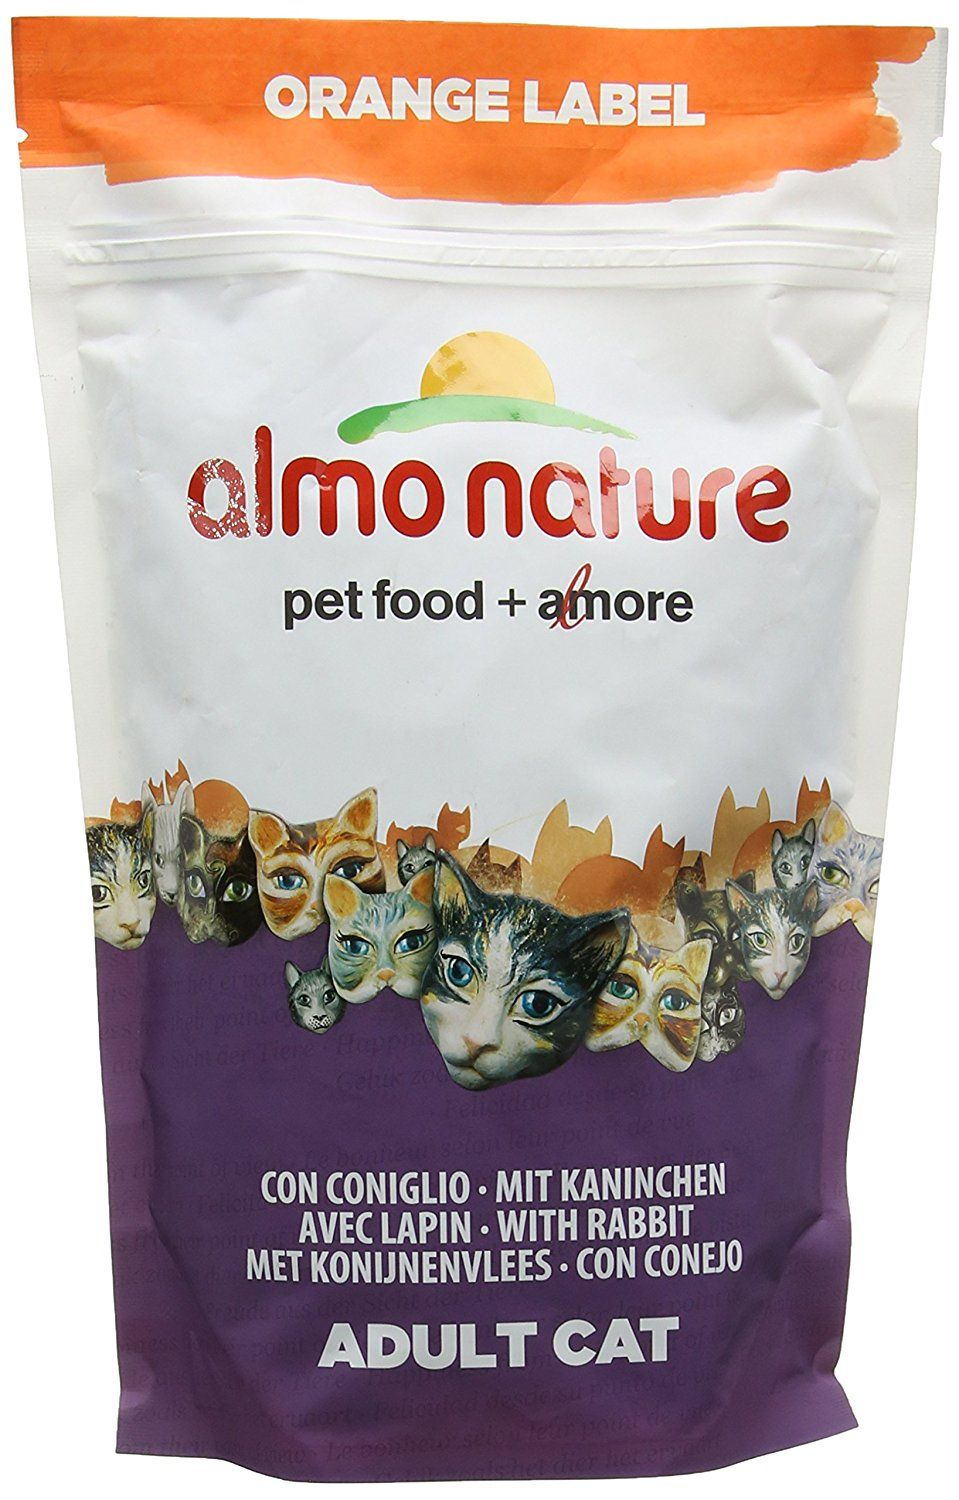 Almo nature dry cat food orange label with rabbit you